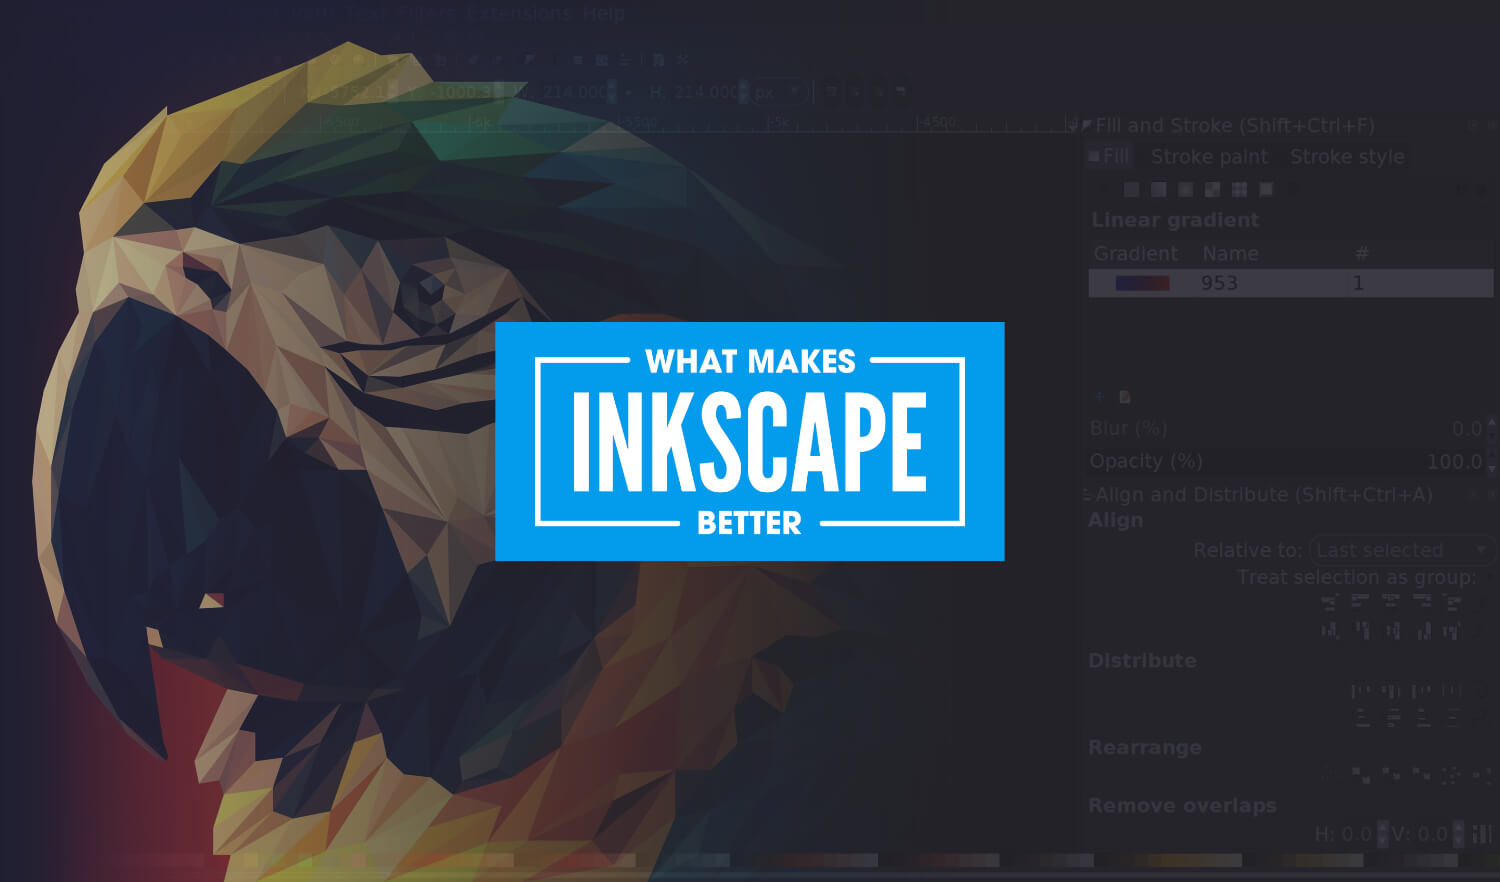 6 Reasons Why I Like Inkscape Better Than Illustrator